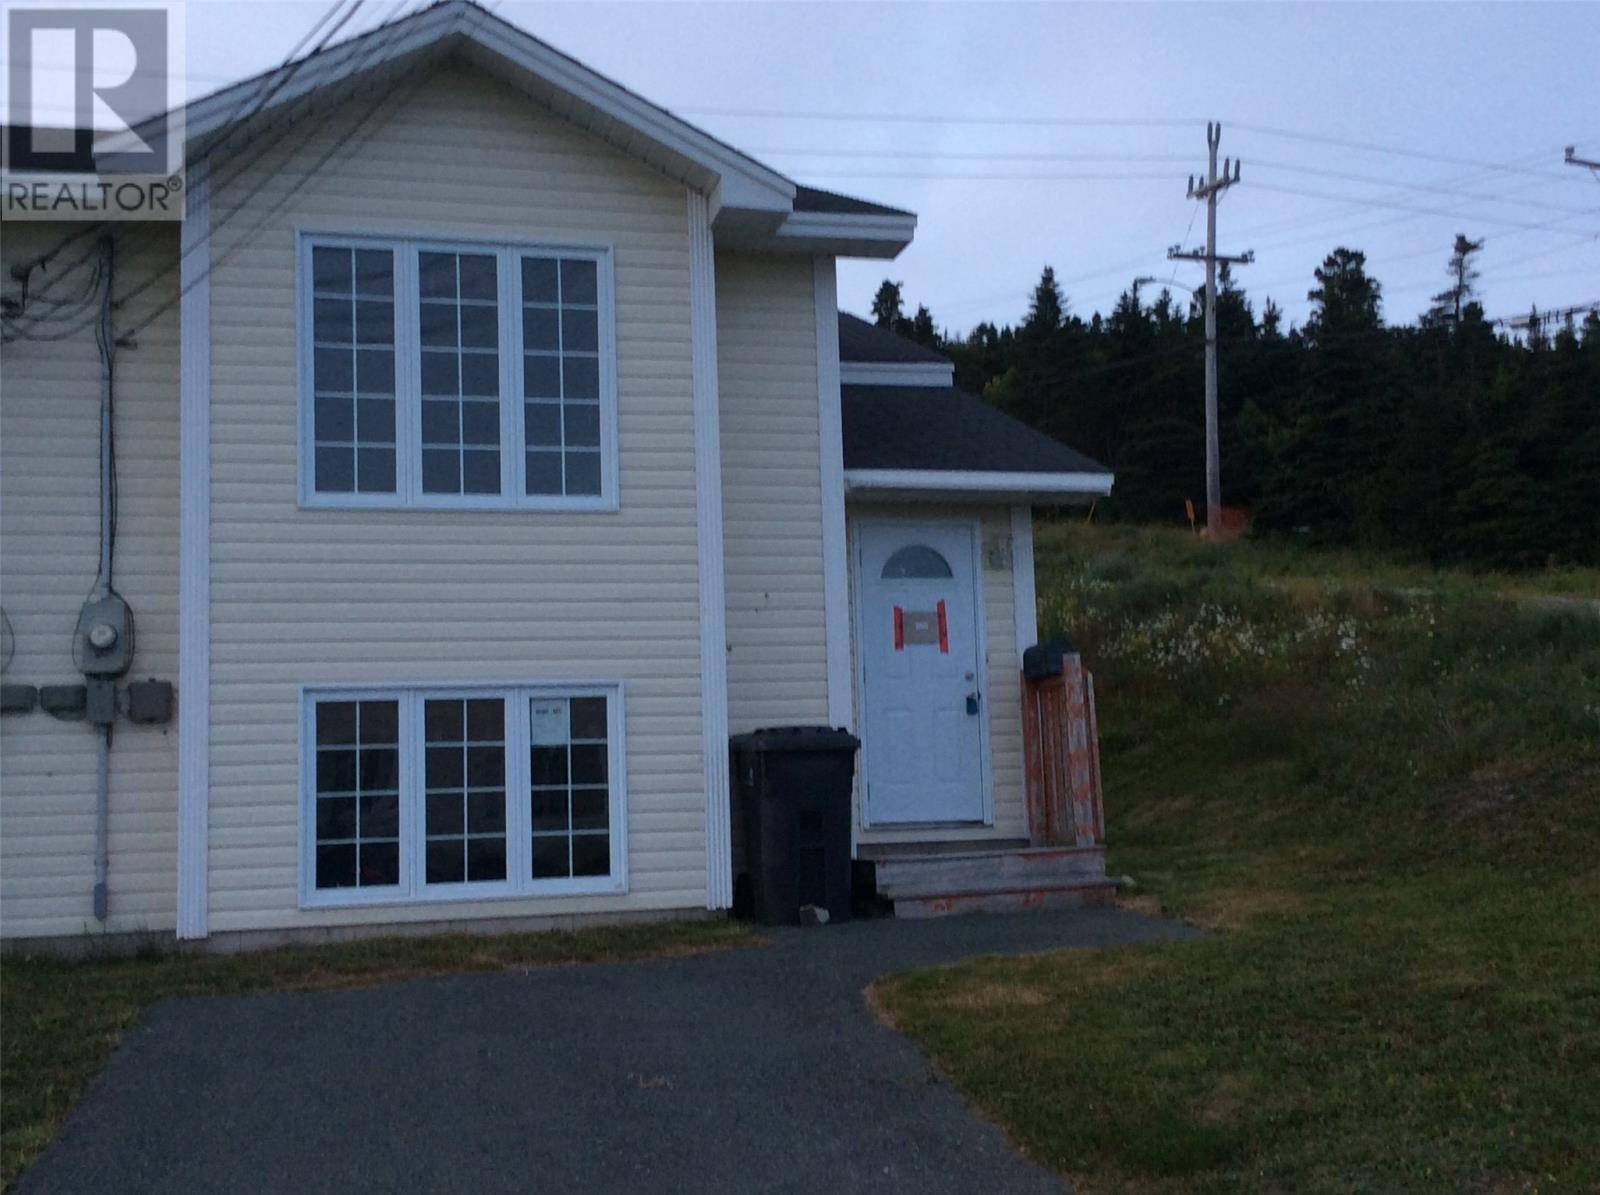 House for sale at 1 Seabright Pl Mt. Pearl Newfoundland - MLS: 1205665